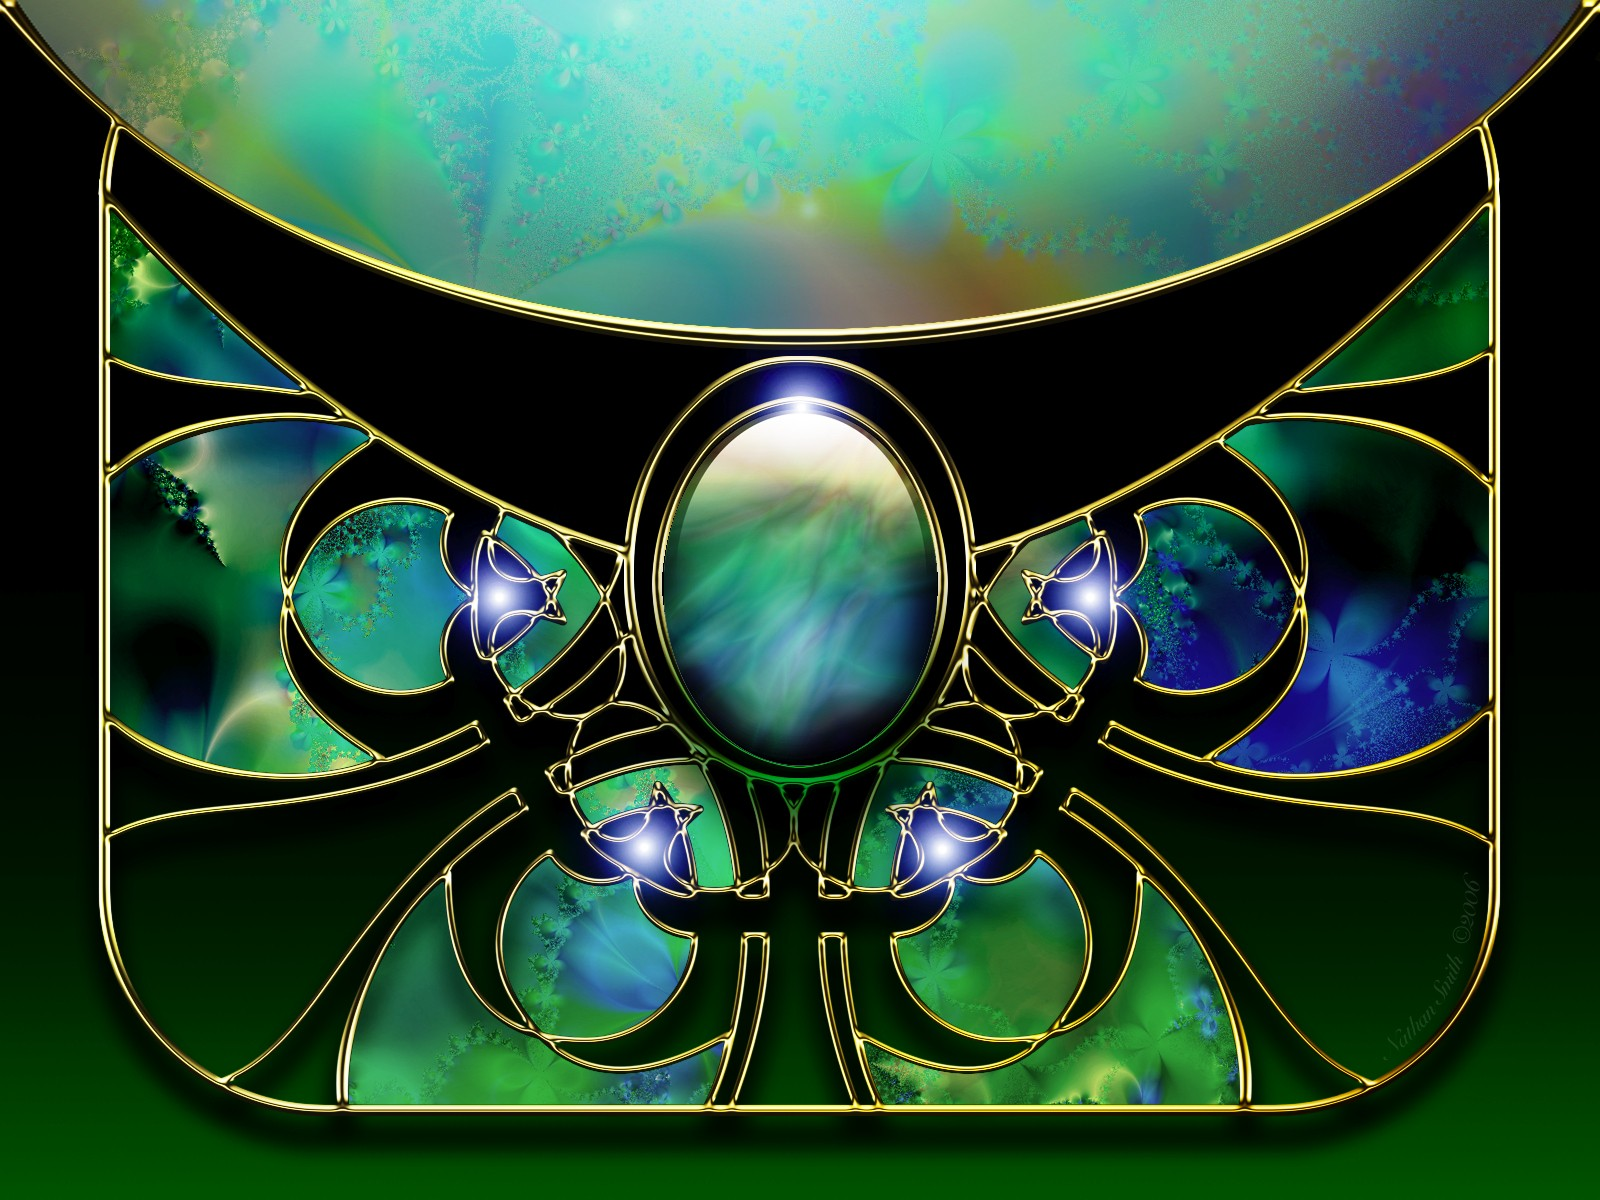 Fractal Art Wallpapers 01